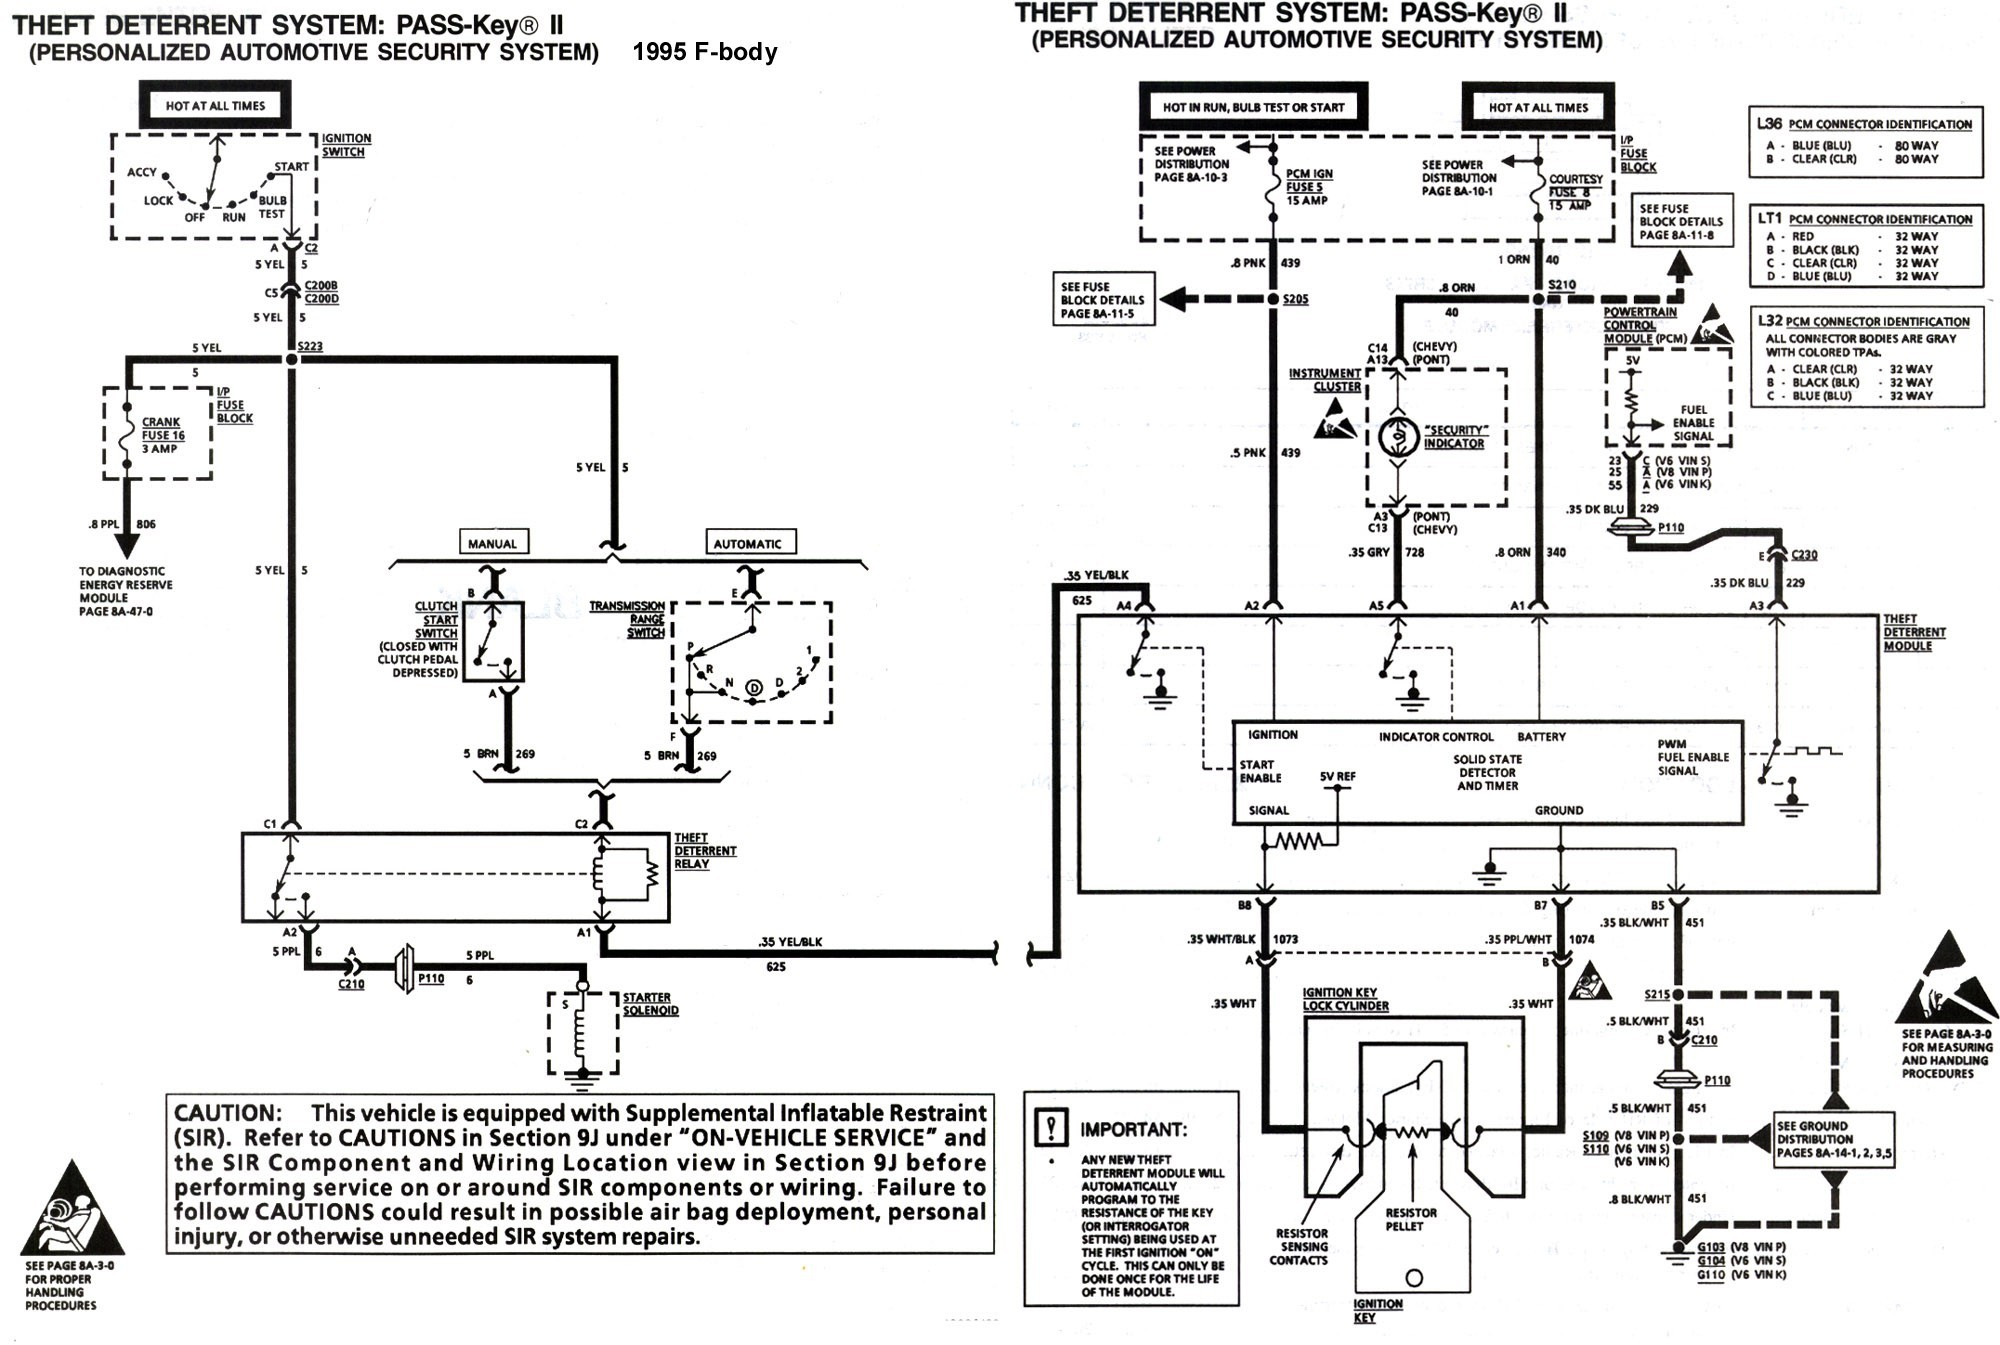 1999 Chevy Tahoe Engine Diagram 5 7 Vortec Wiring Diagram 4 3l Vortec Engine Diagram Wiring Diagrams Of 1999 Chevy Tahoe Engine Diagram